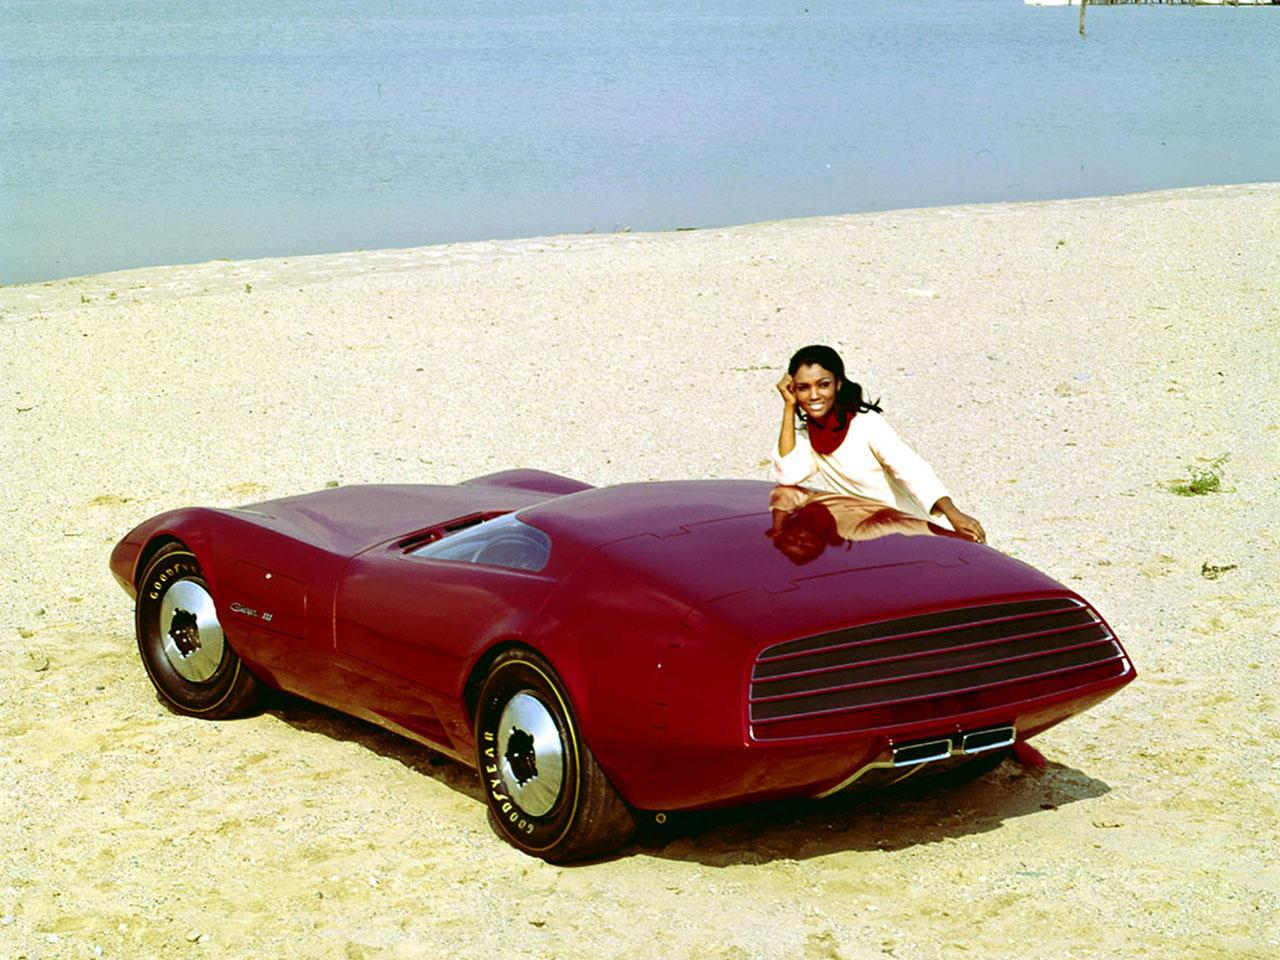 Dodge Charger Iii Concept Car 1968 Old Concept Cars